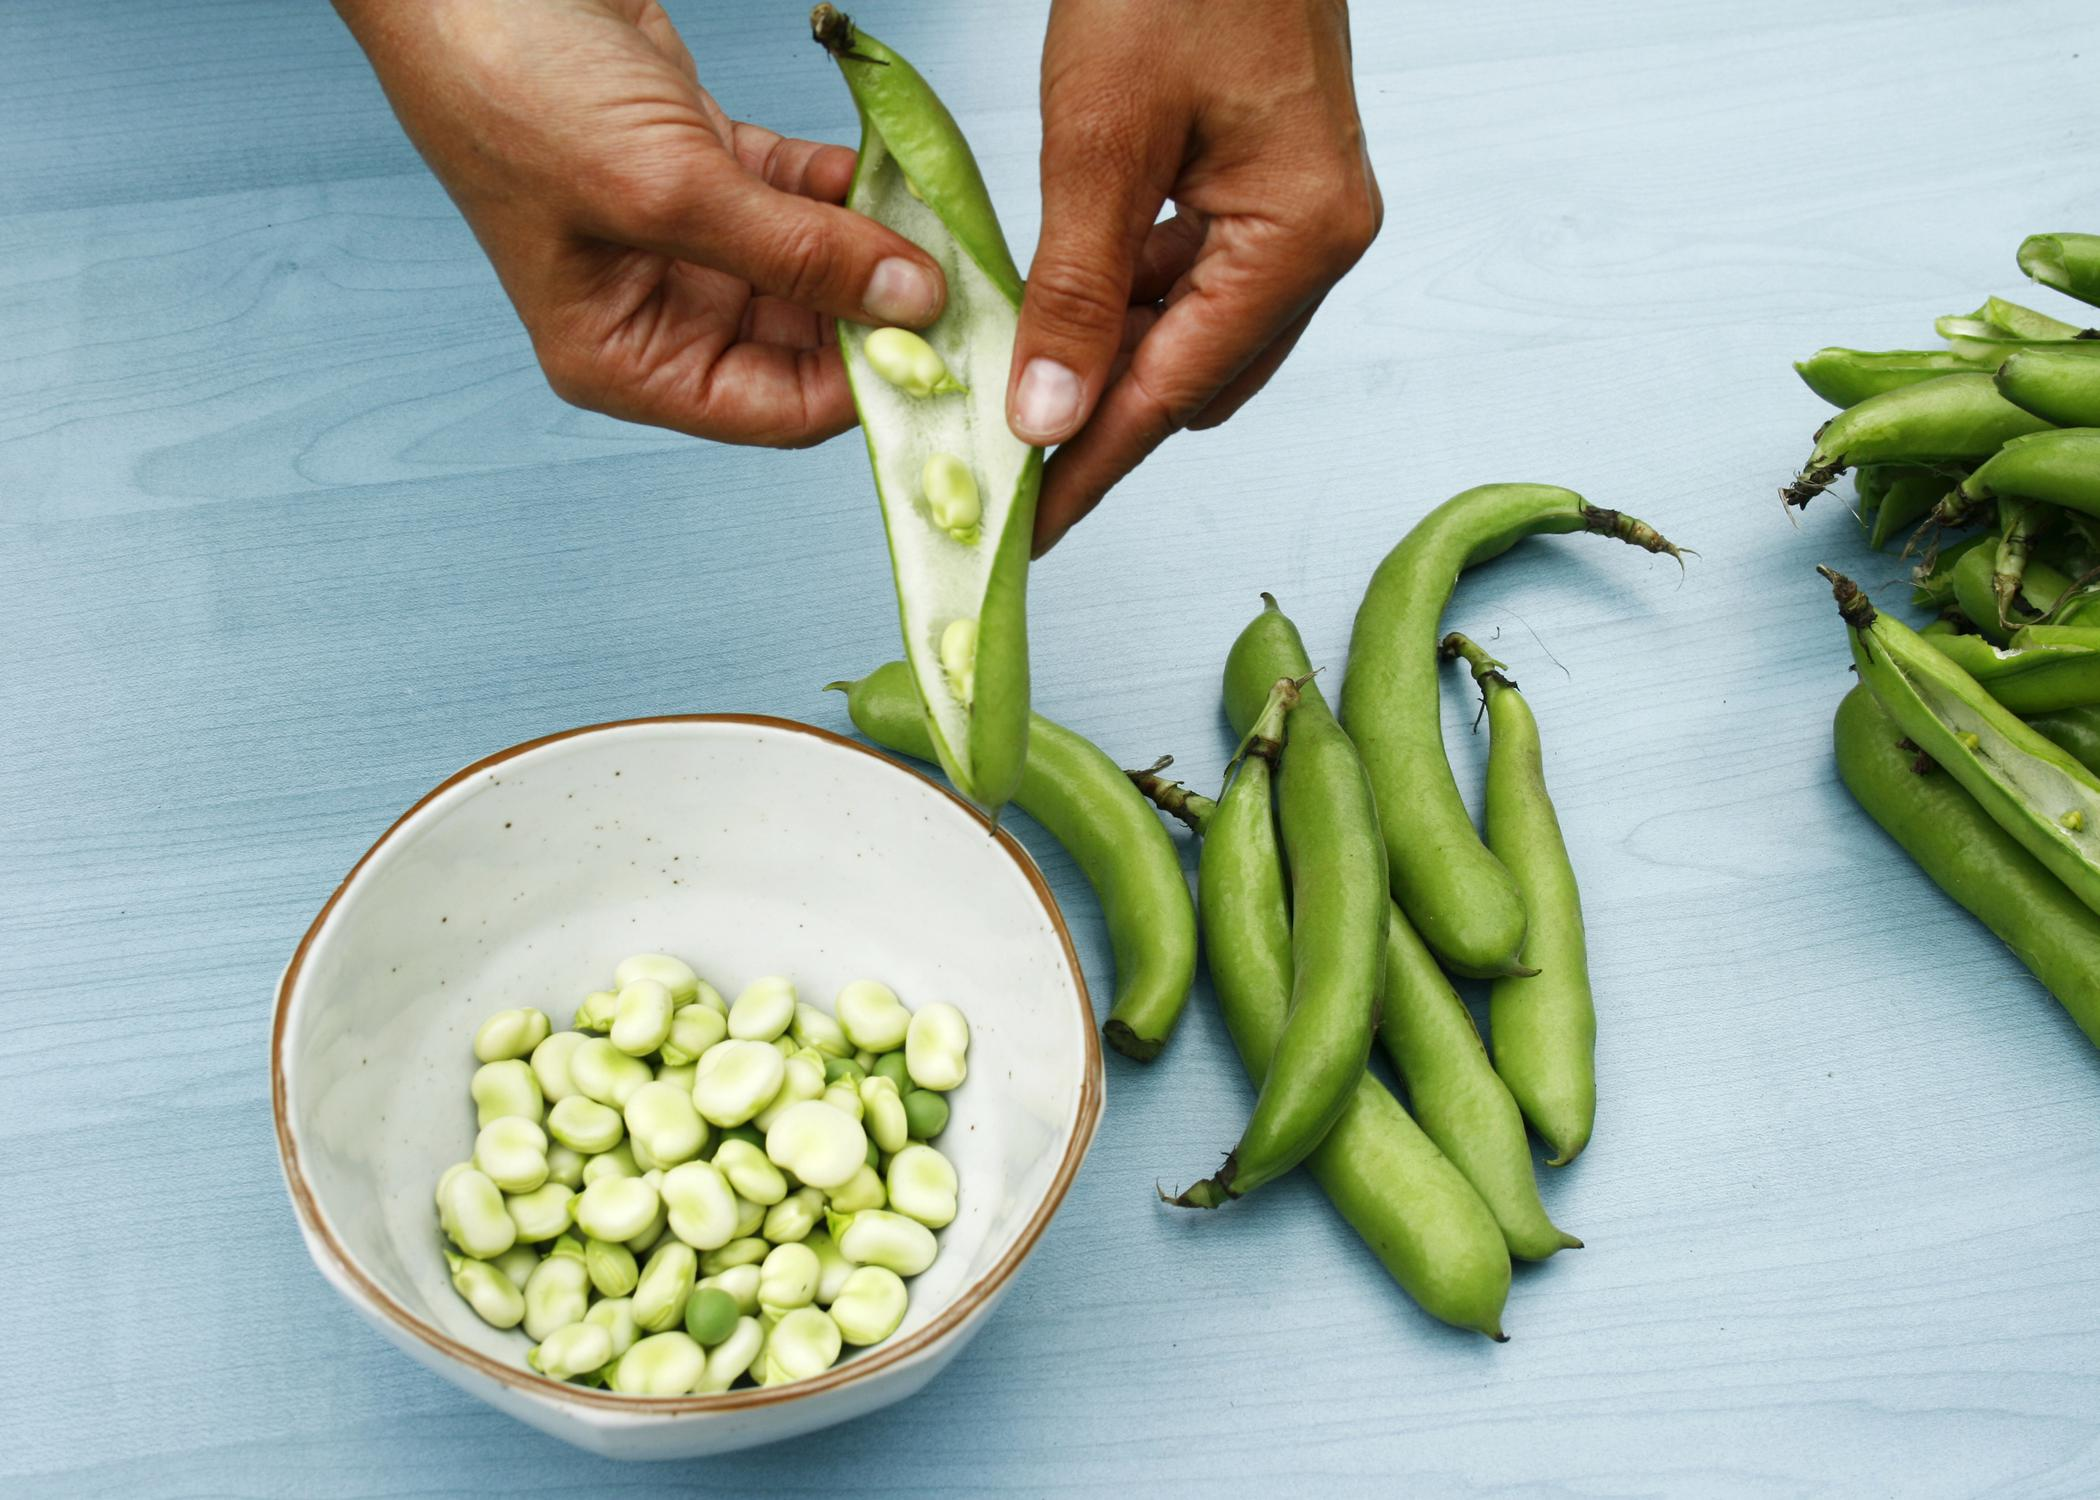 Before freezing vegetables, such as beans, shell them and then separate the good from the bad. (iStock photo)